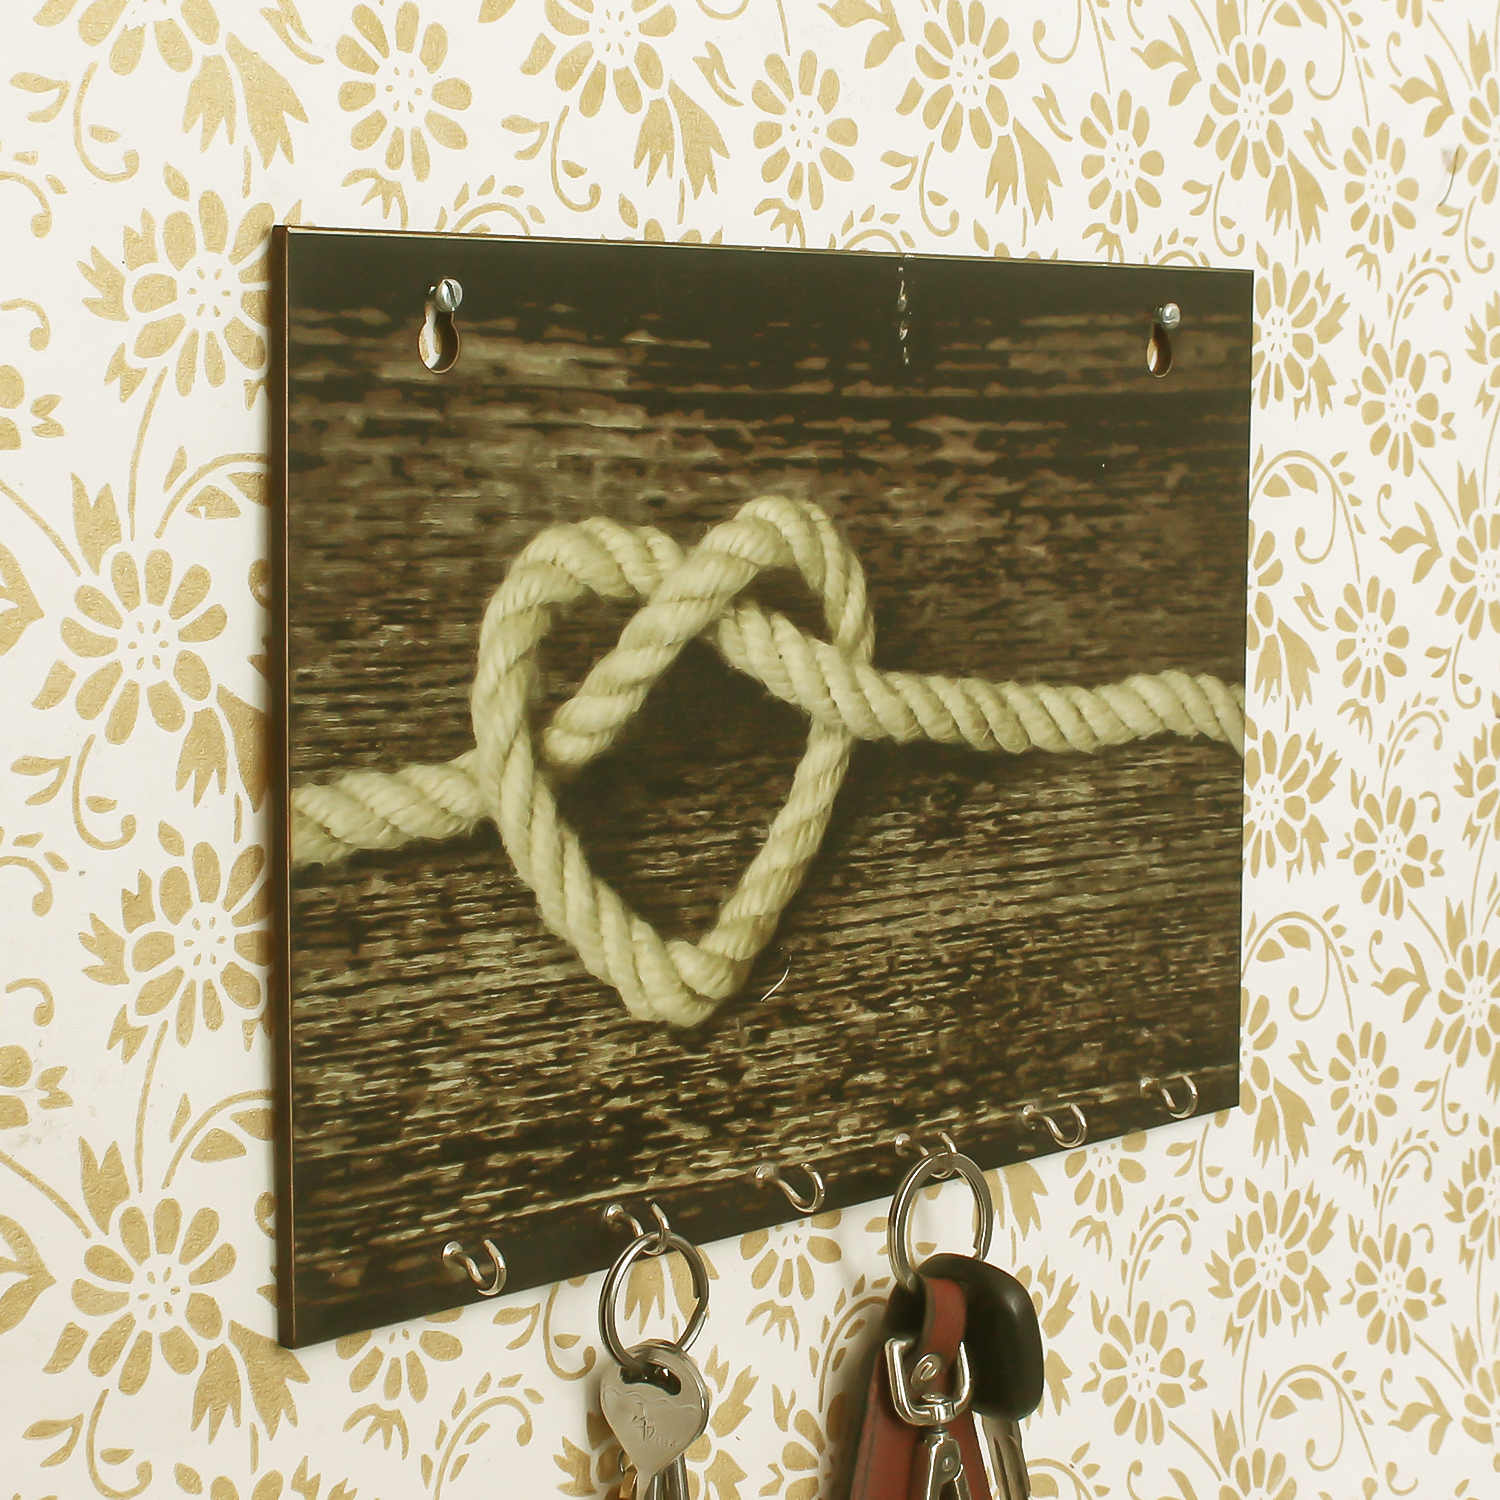 Heart made of Rope Theme Wooden Key Holder with 6 Hooks Indian Home Decor